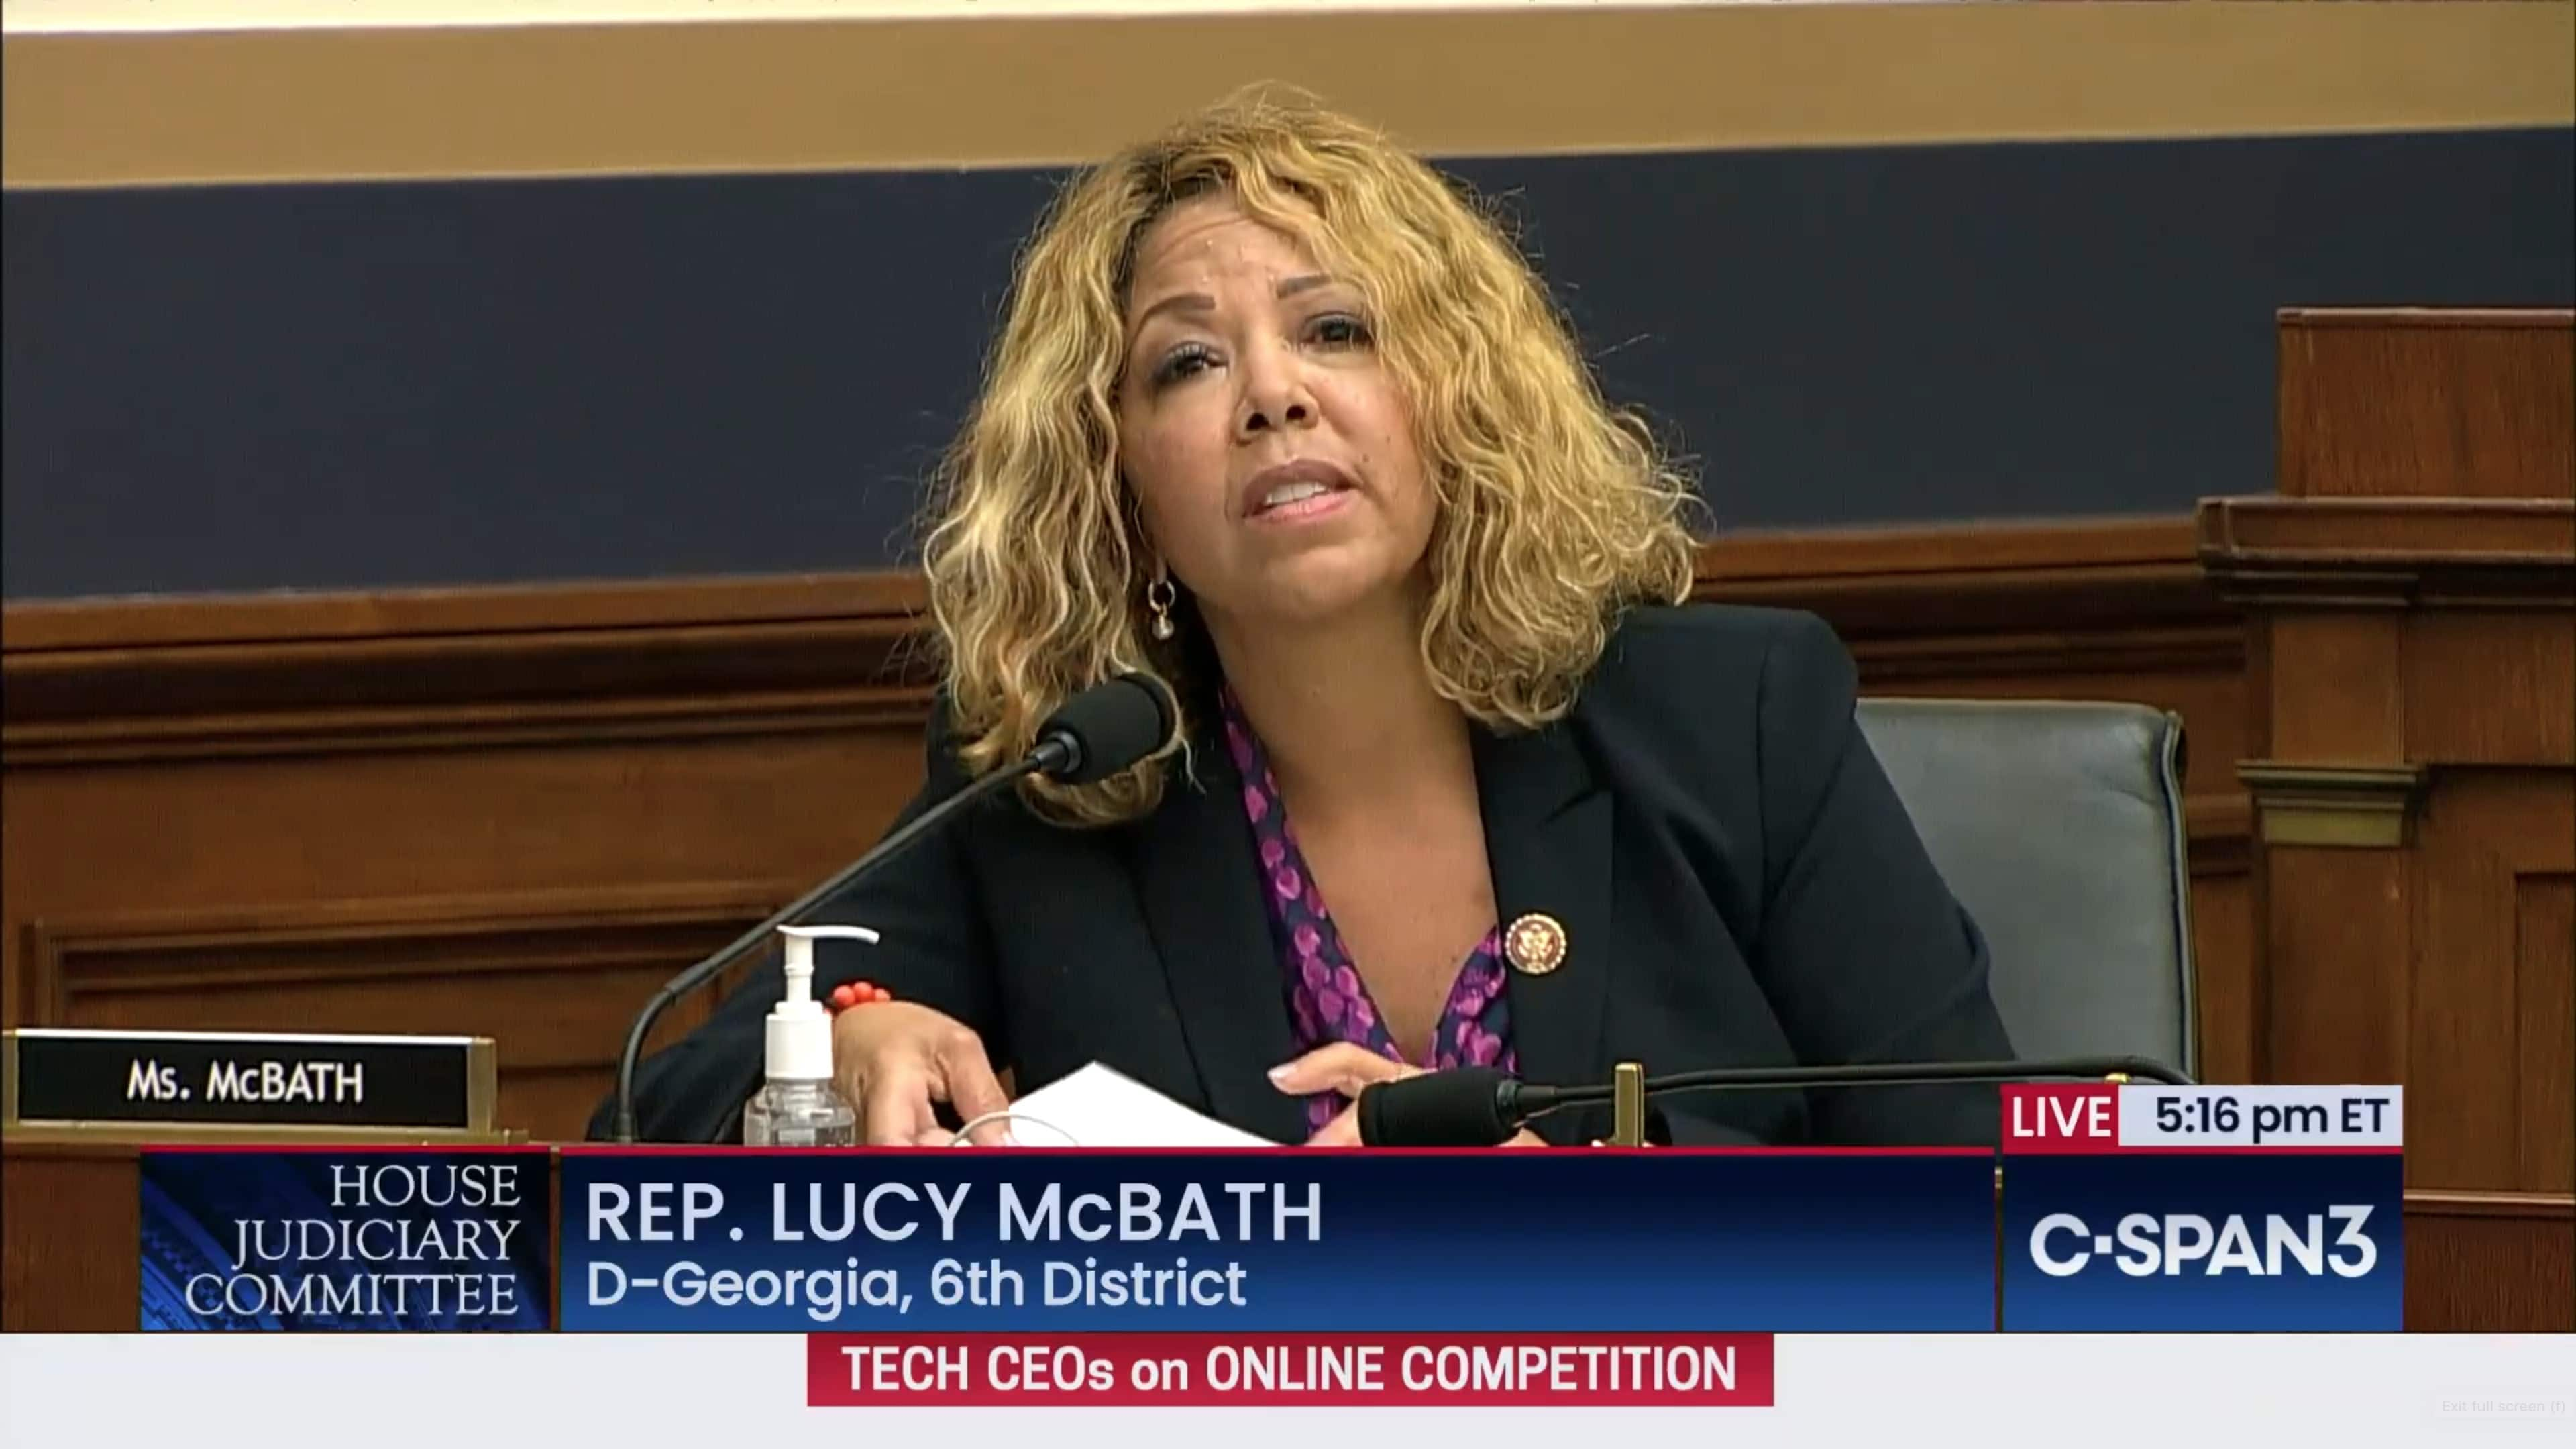 Rep. Lucy McBath did issue some pointed questions about Apple's business practices during the House Judiciary antitrust subcommittee hearing.